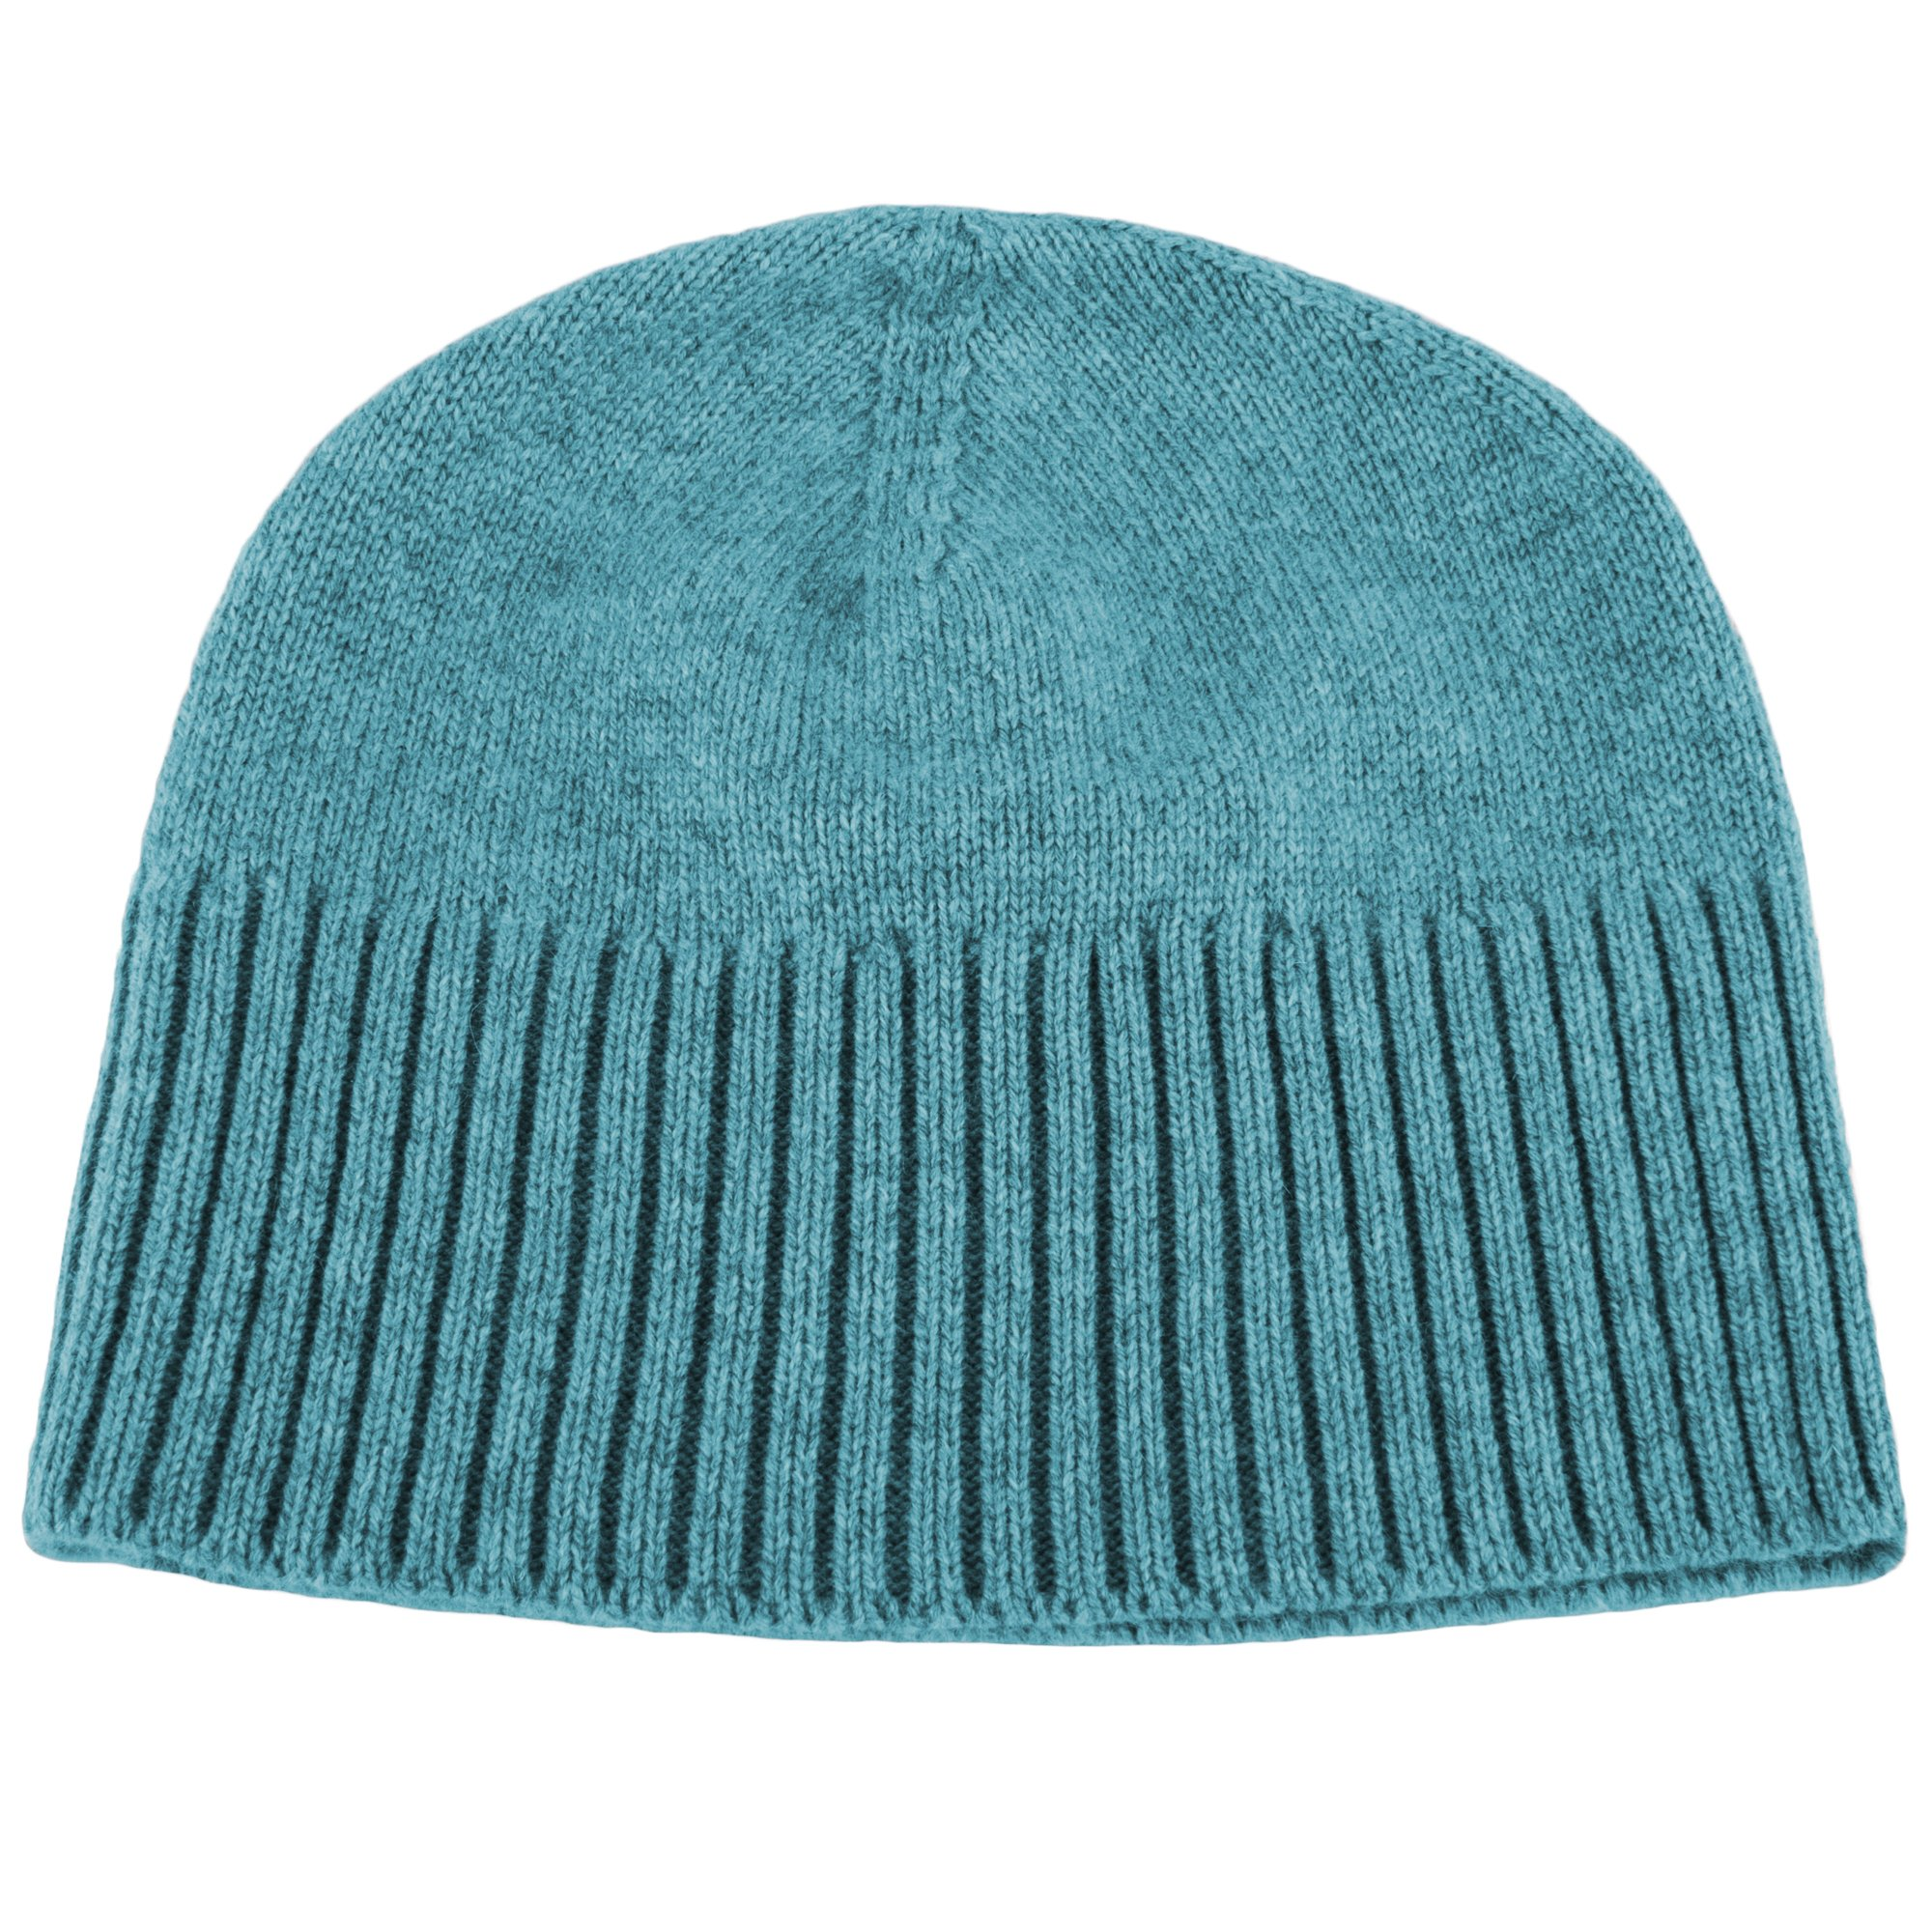 Love Cashmere Women's 100% Cashmere Ski Beanie Hat - Sky Blue - Handmade in Scotland by RRP 130